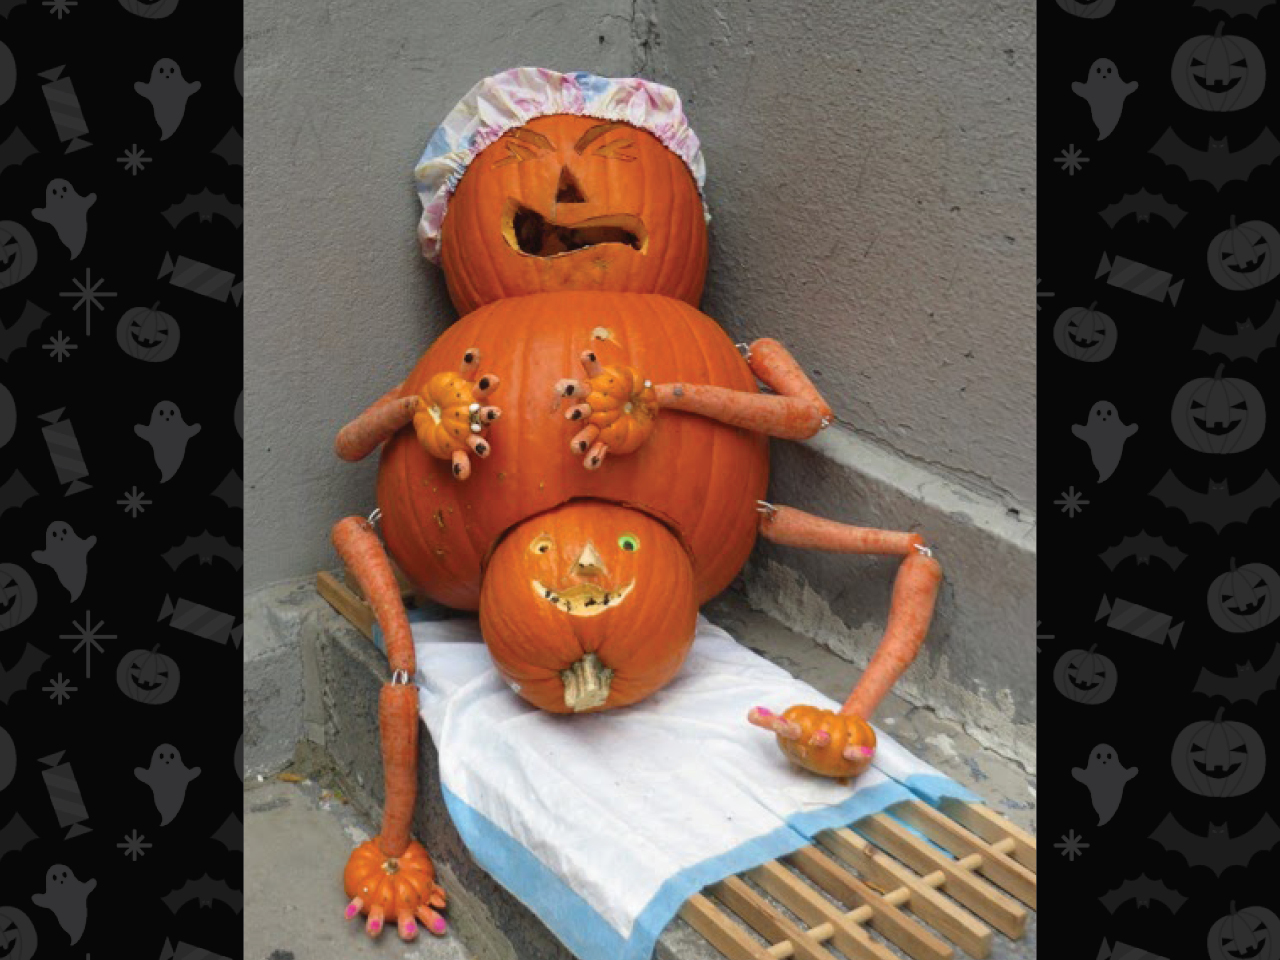 pumpkin carved as pregnant woman wearing a bathing cap and giving birth